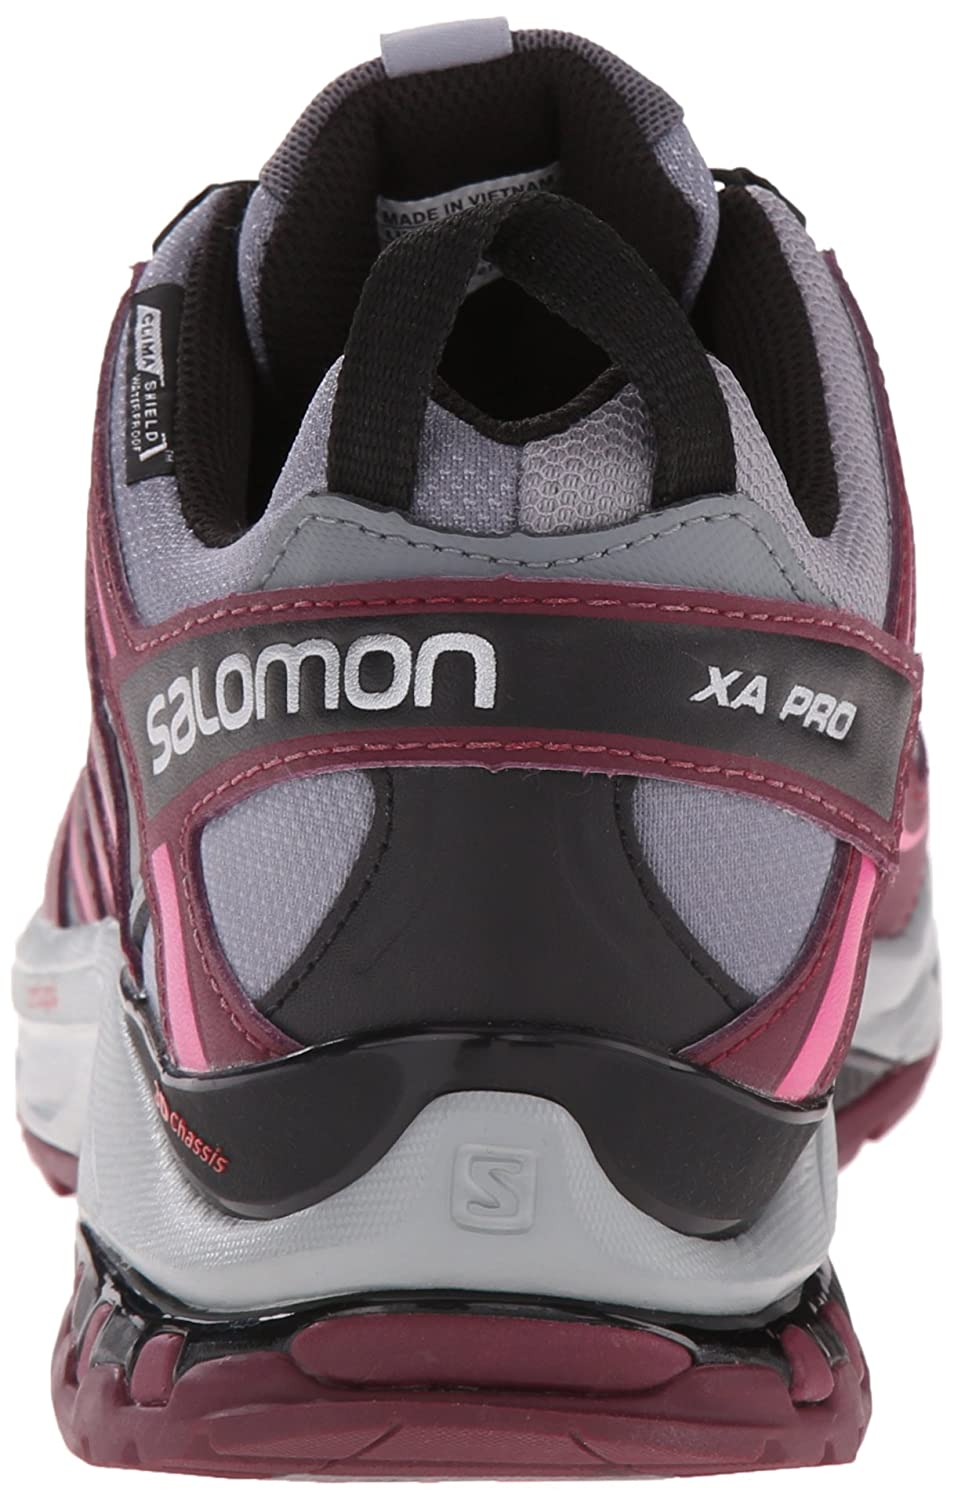 Salomon Women's XA Pro 3D CS Waterproof W 9 Trail Running Shoe B00ZLN4PZM 9 W B(M) US|Pearl Grey/Bordeaux/Hot Pink faf359